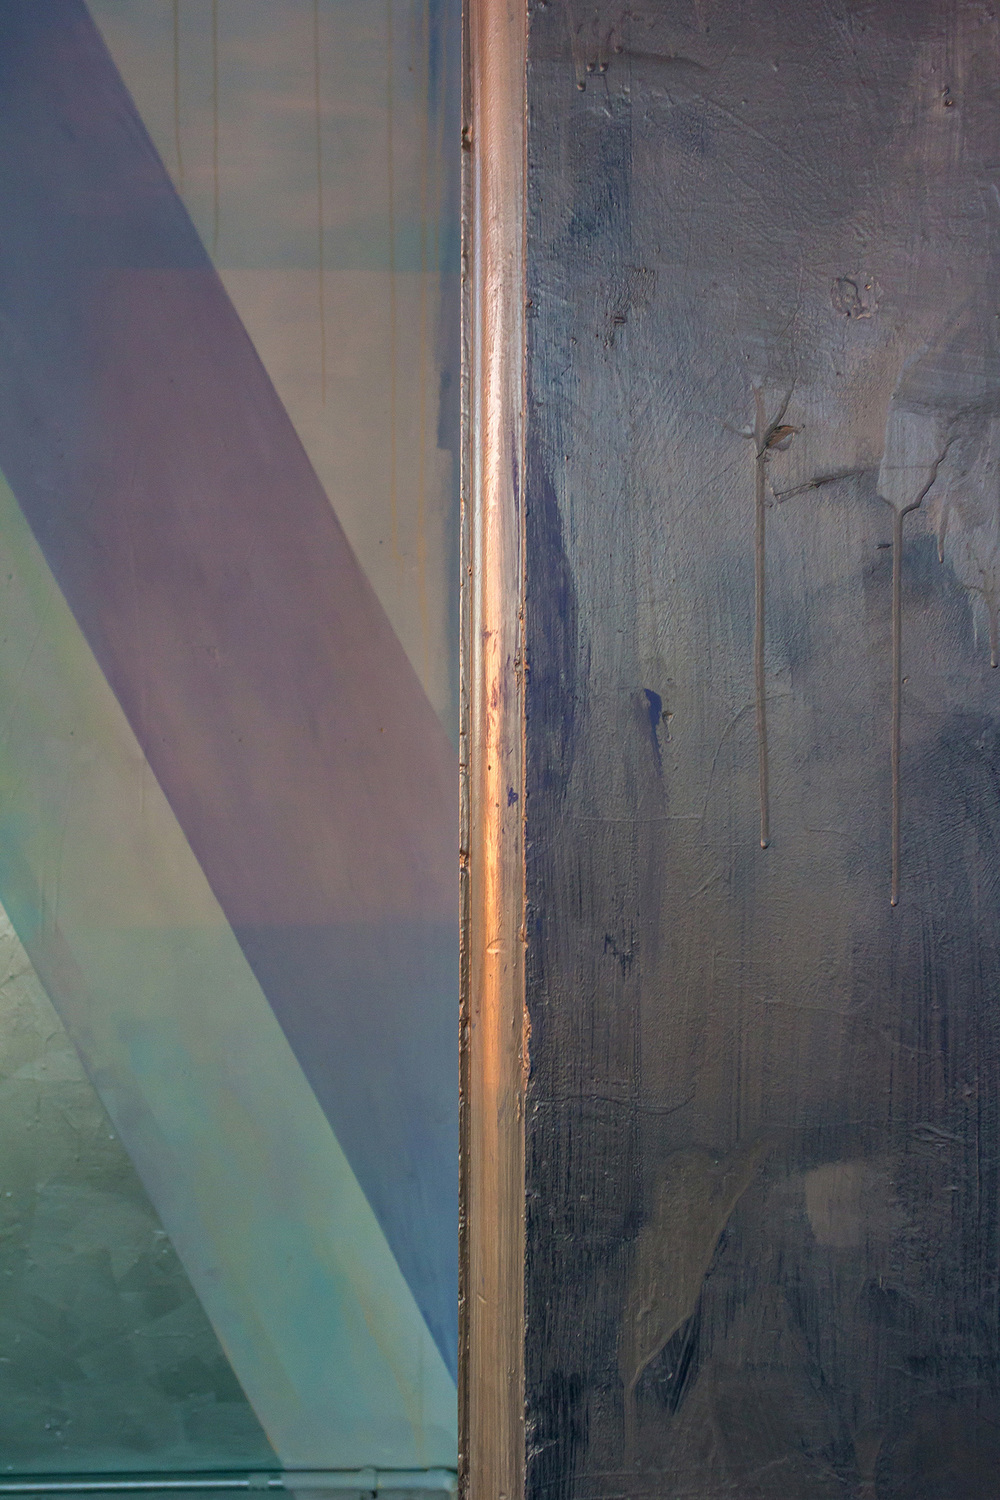 Detail of abstract contemporary painting, part of a large scale mural painted in a warehouse like tower, features geometric silver leaf shapes and metallic silver paint reflecting light.